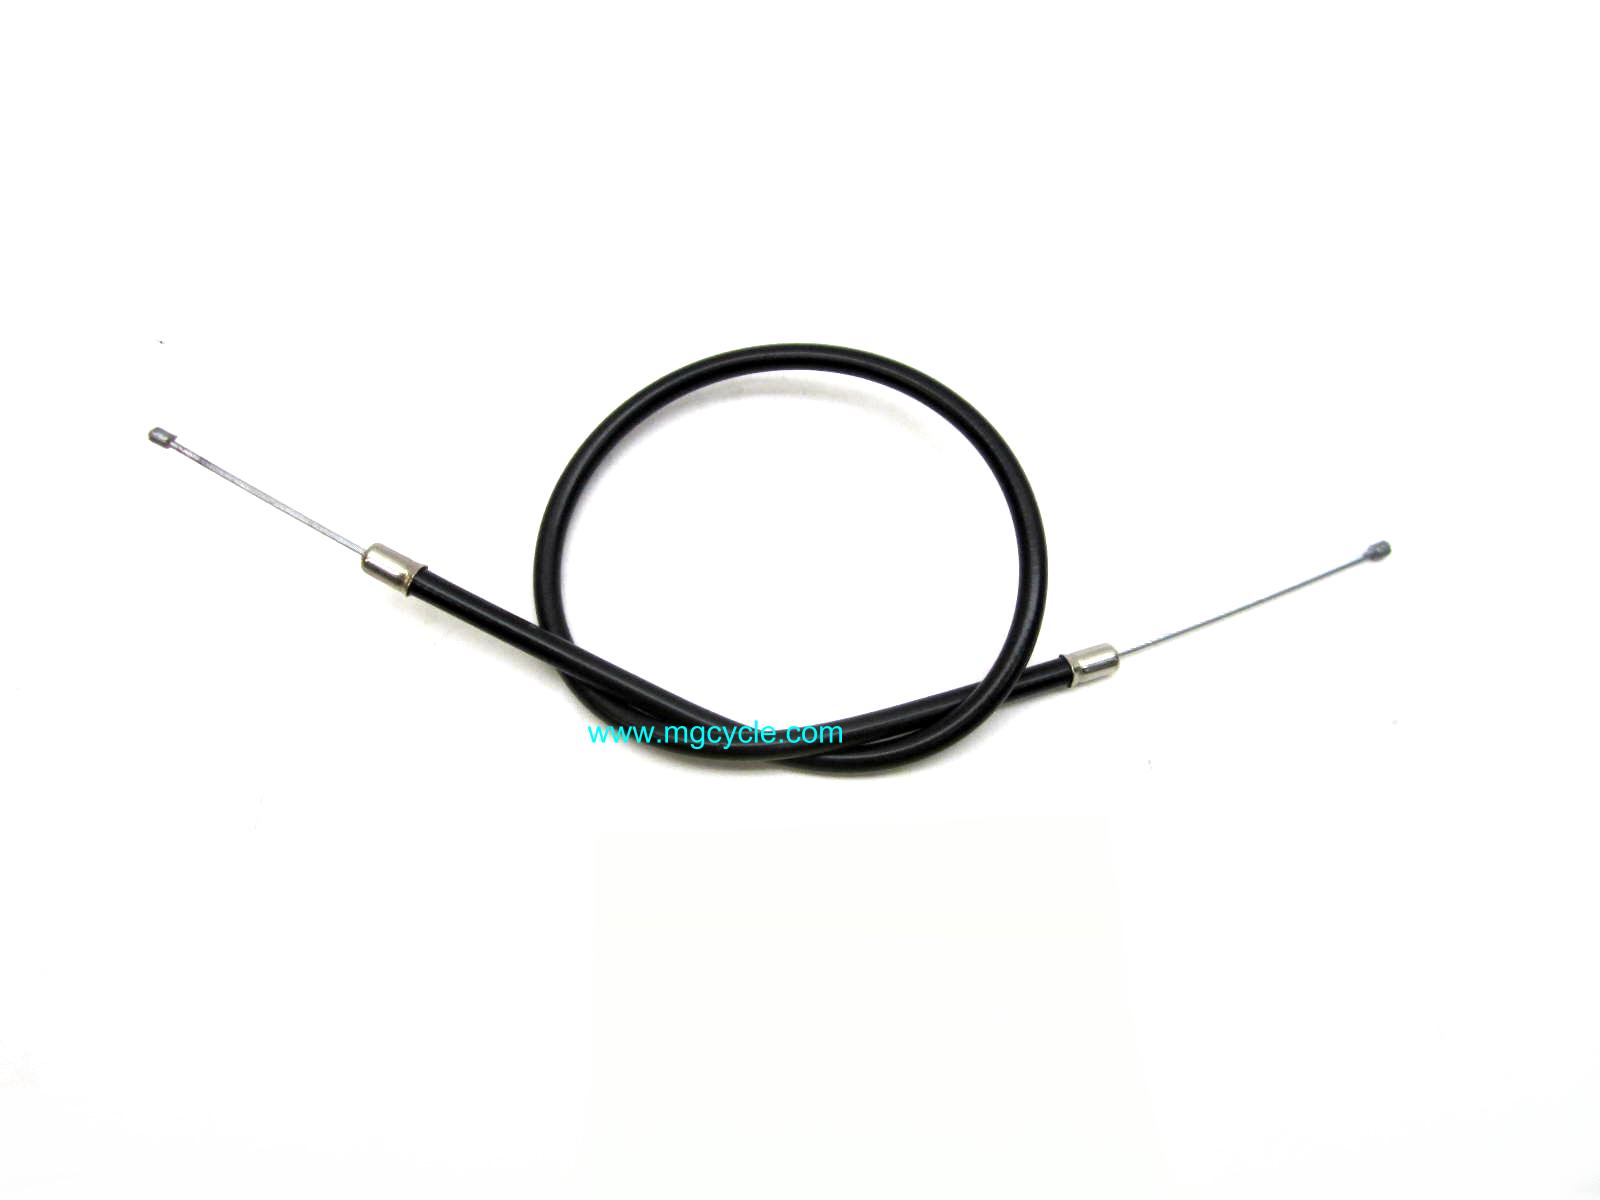 Choke cable LeMans 1000 1985-1992 right LM 4 and 5